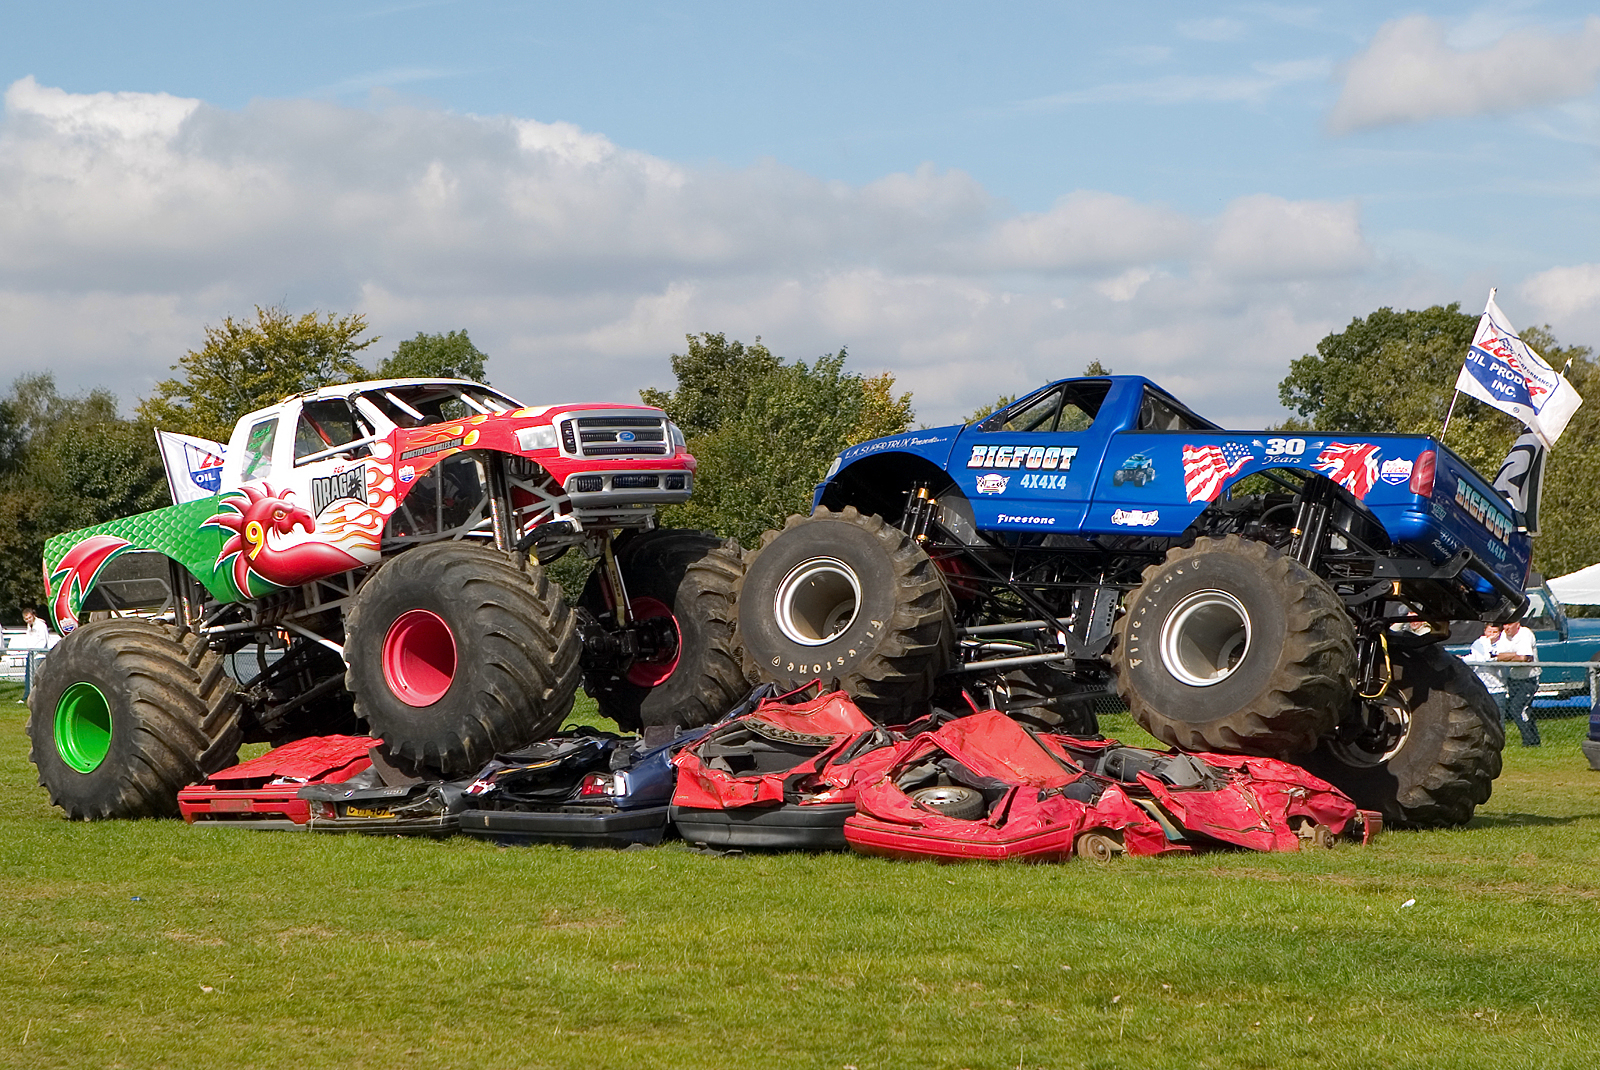 monstertrucks_wallpaper_020_1600_1070.jpg